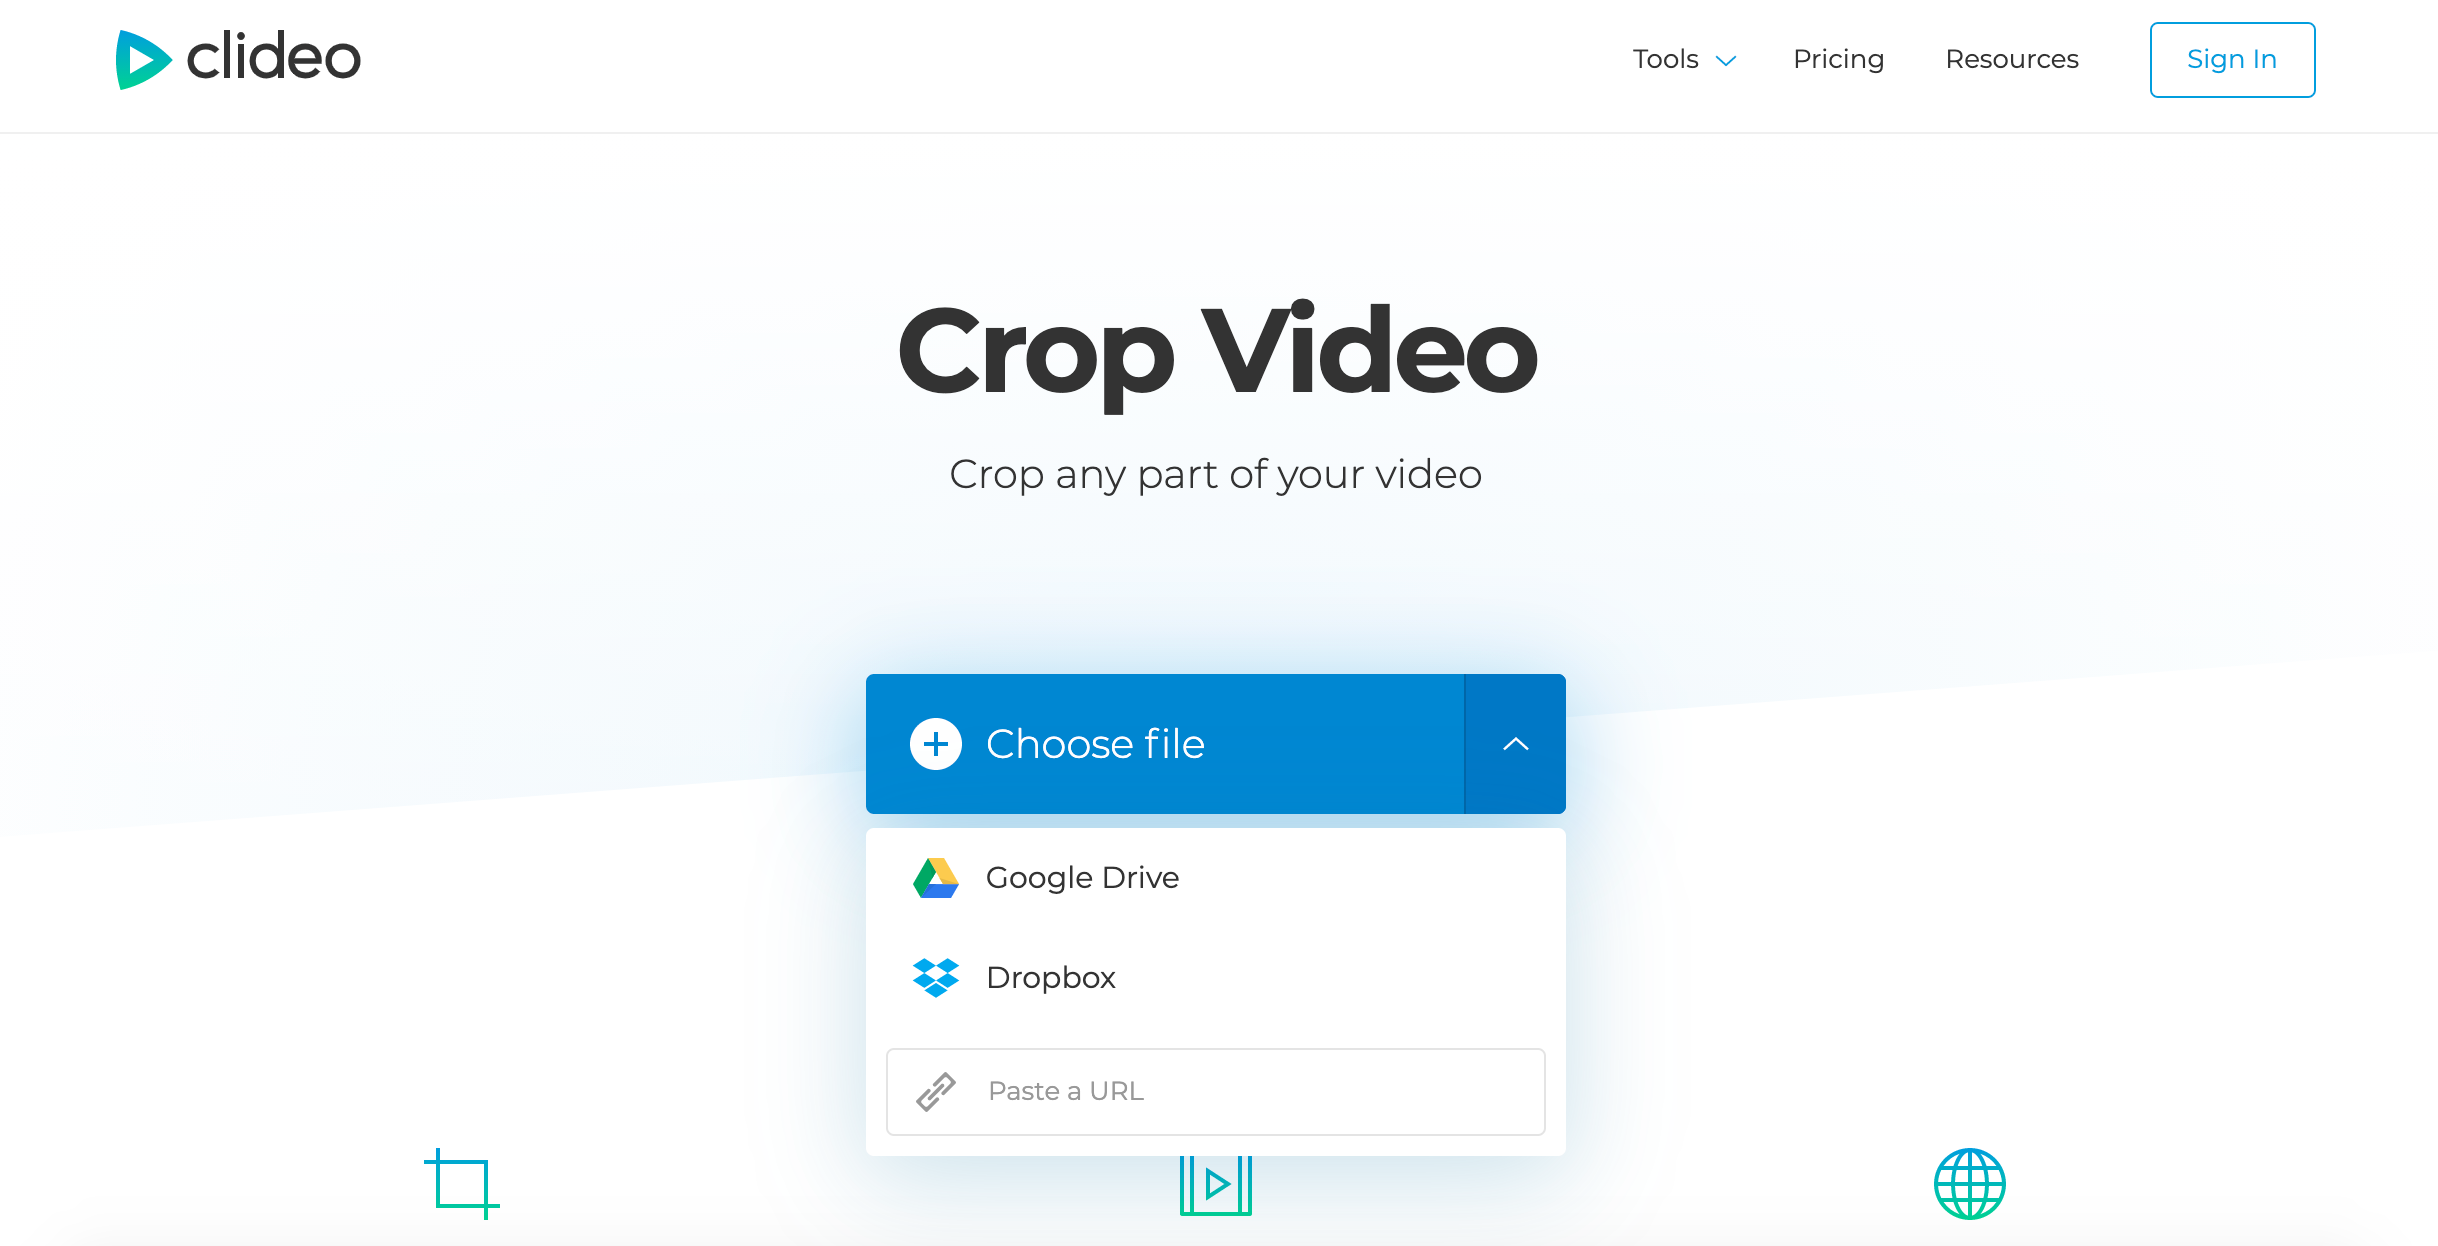 Open a video you want to crop from any device